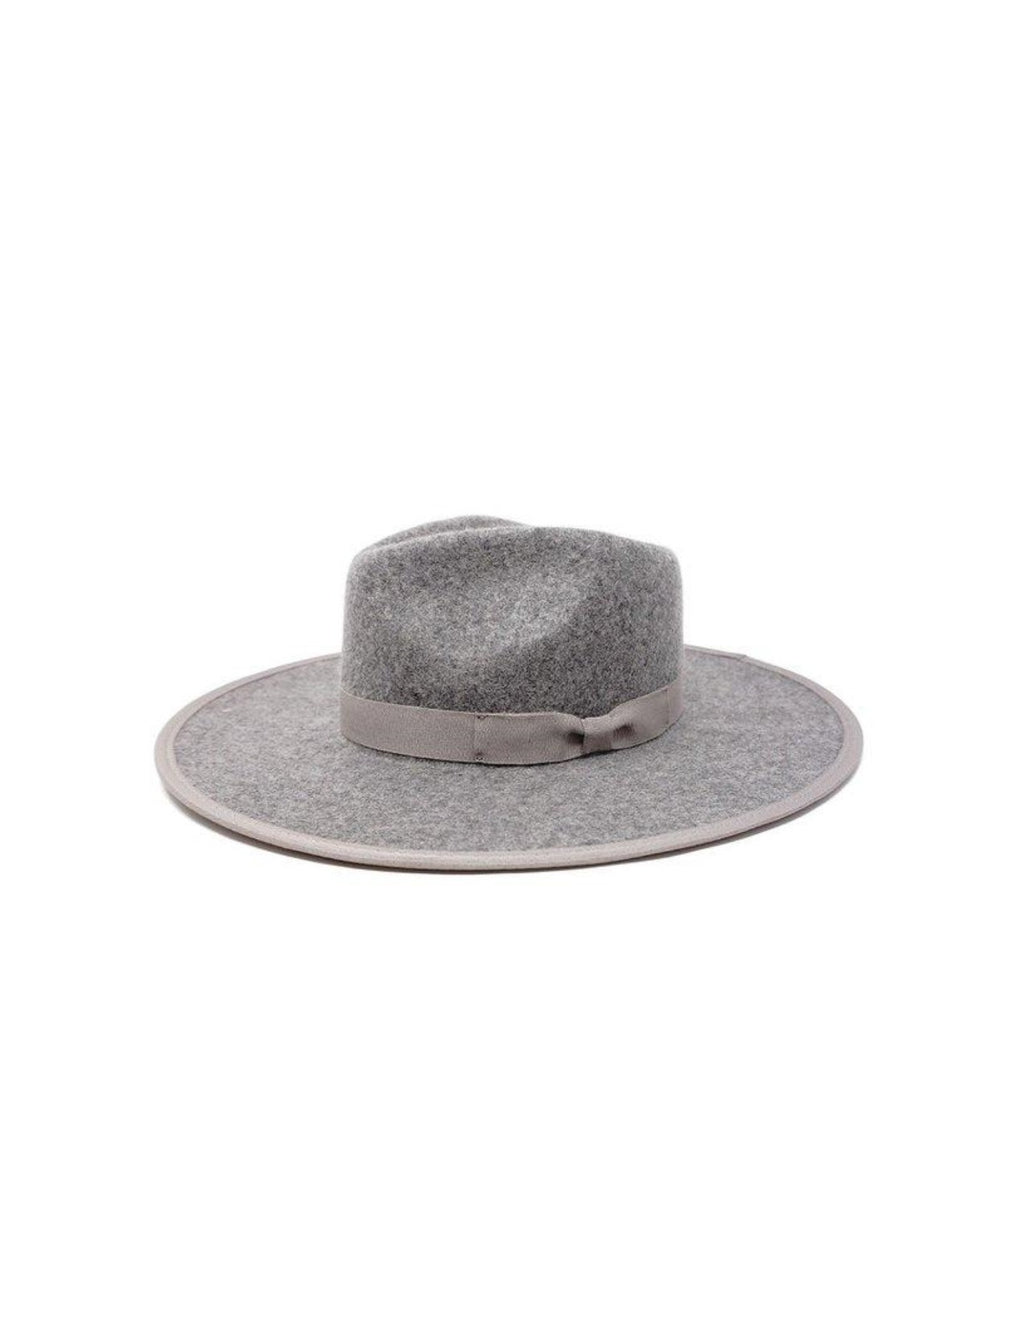 BARRY HAT GREY